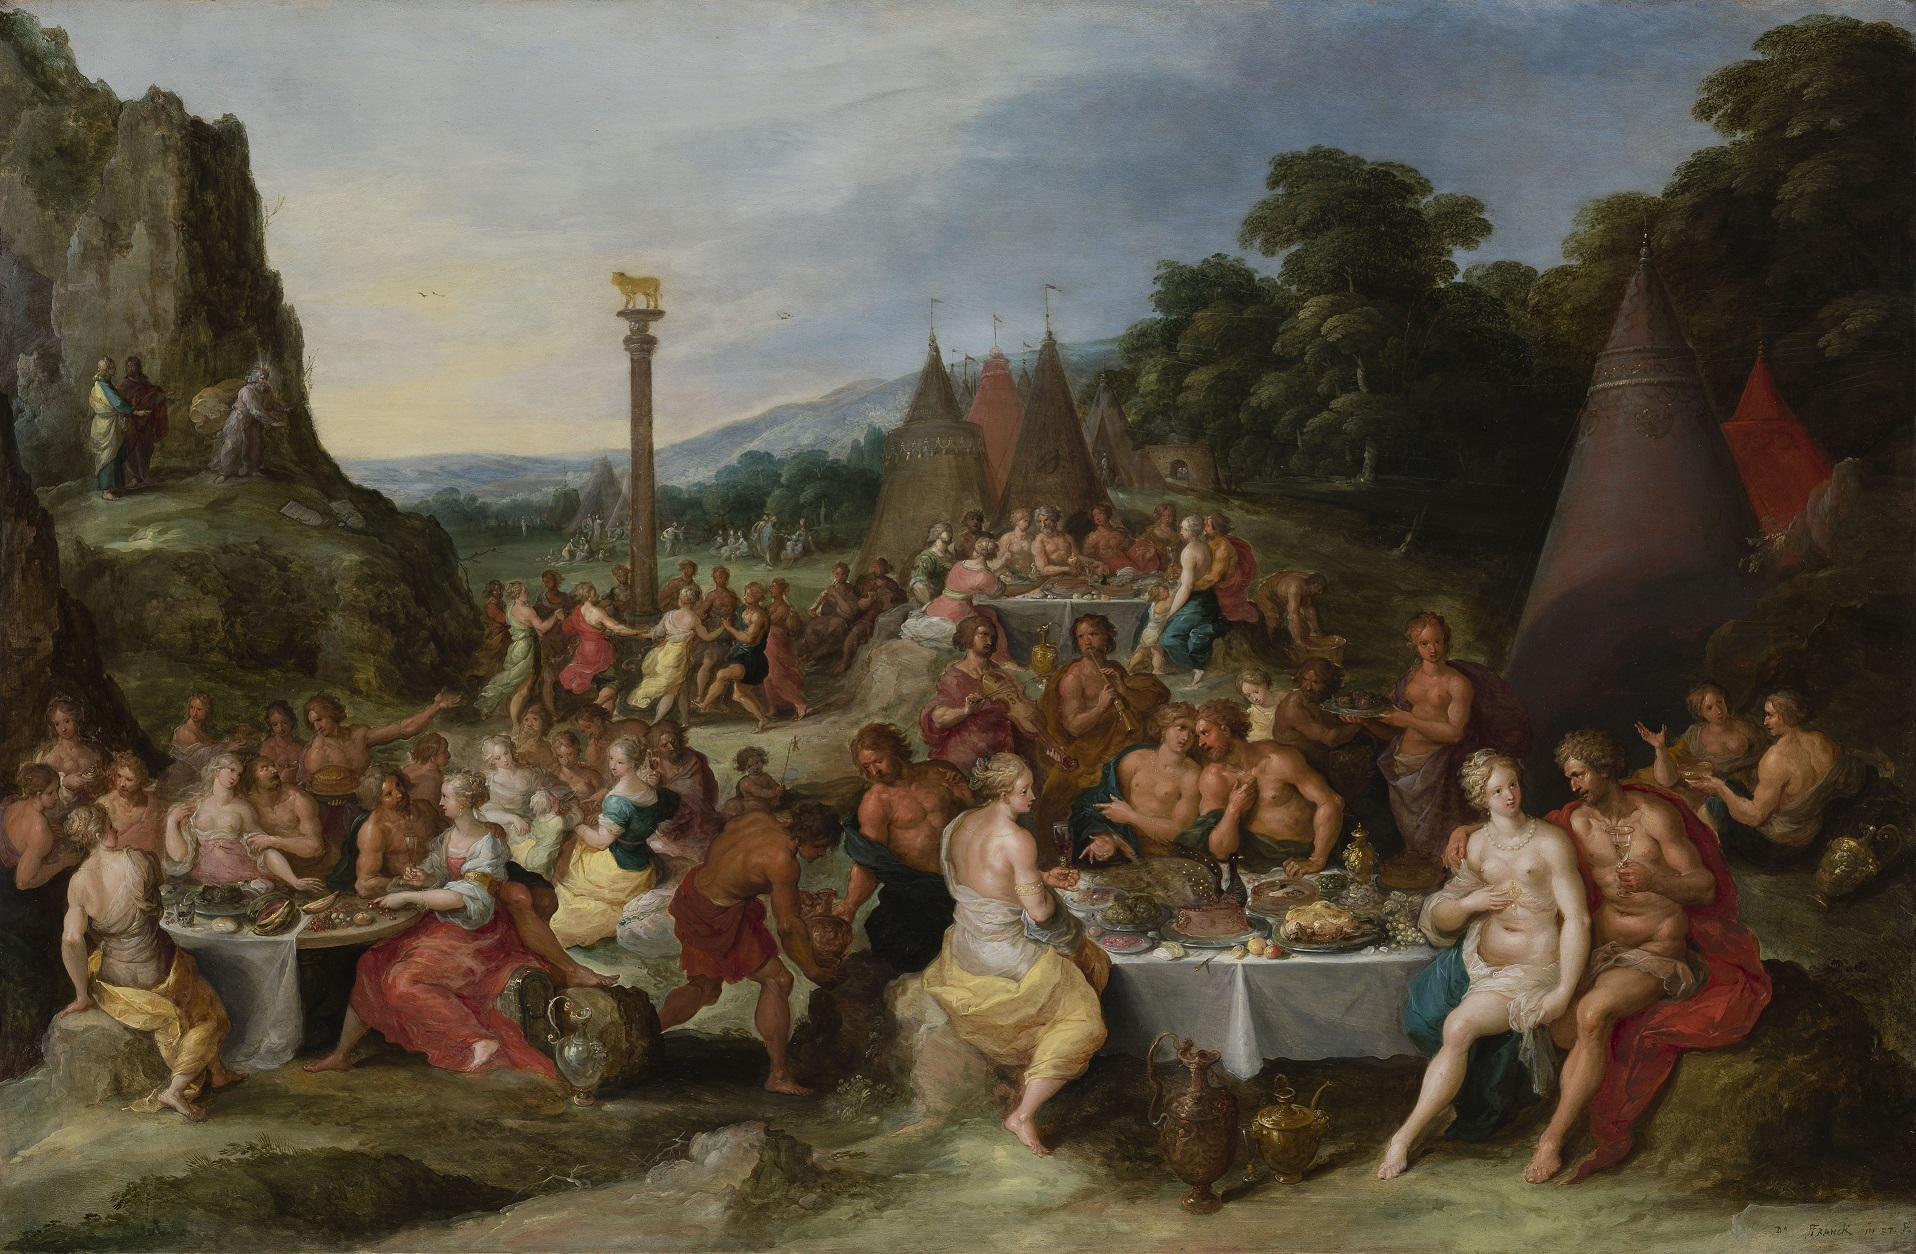 Worship of the Golden Calf by Frans Francken the Younger c.1630-35, oil on panel. The theme of abundance is central to this painting and others which inspired the exhibition's historical recreation of a Baroque feasting table.